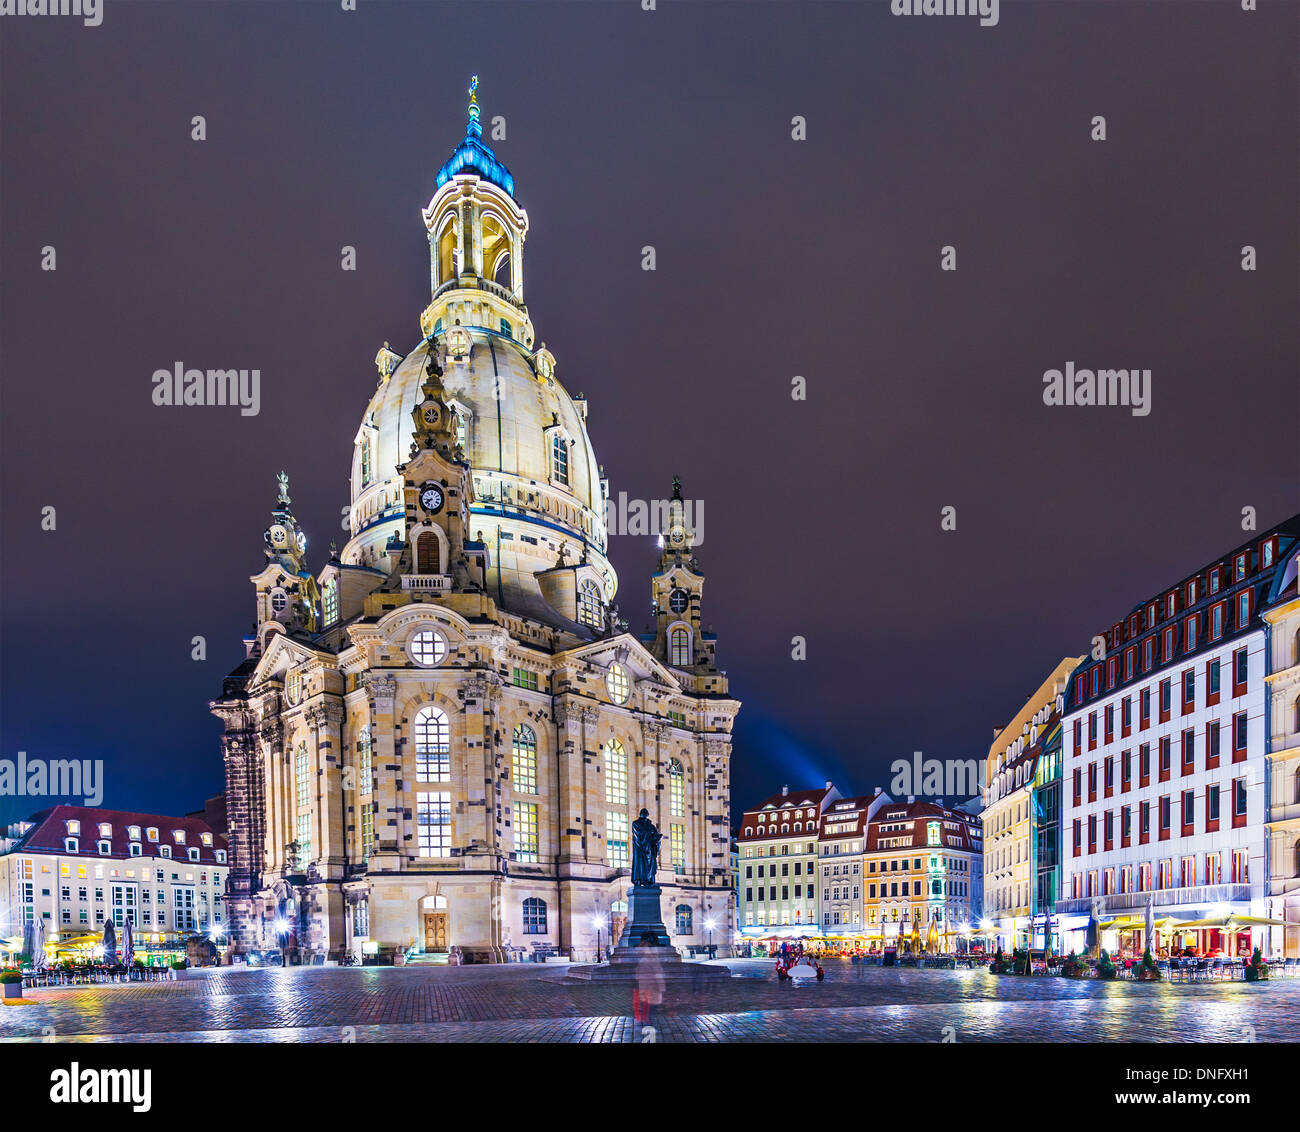 Dresden, Germany at Neumarkt Square. - Stock Image